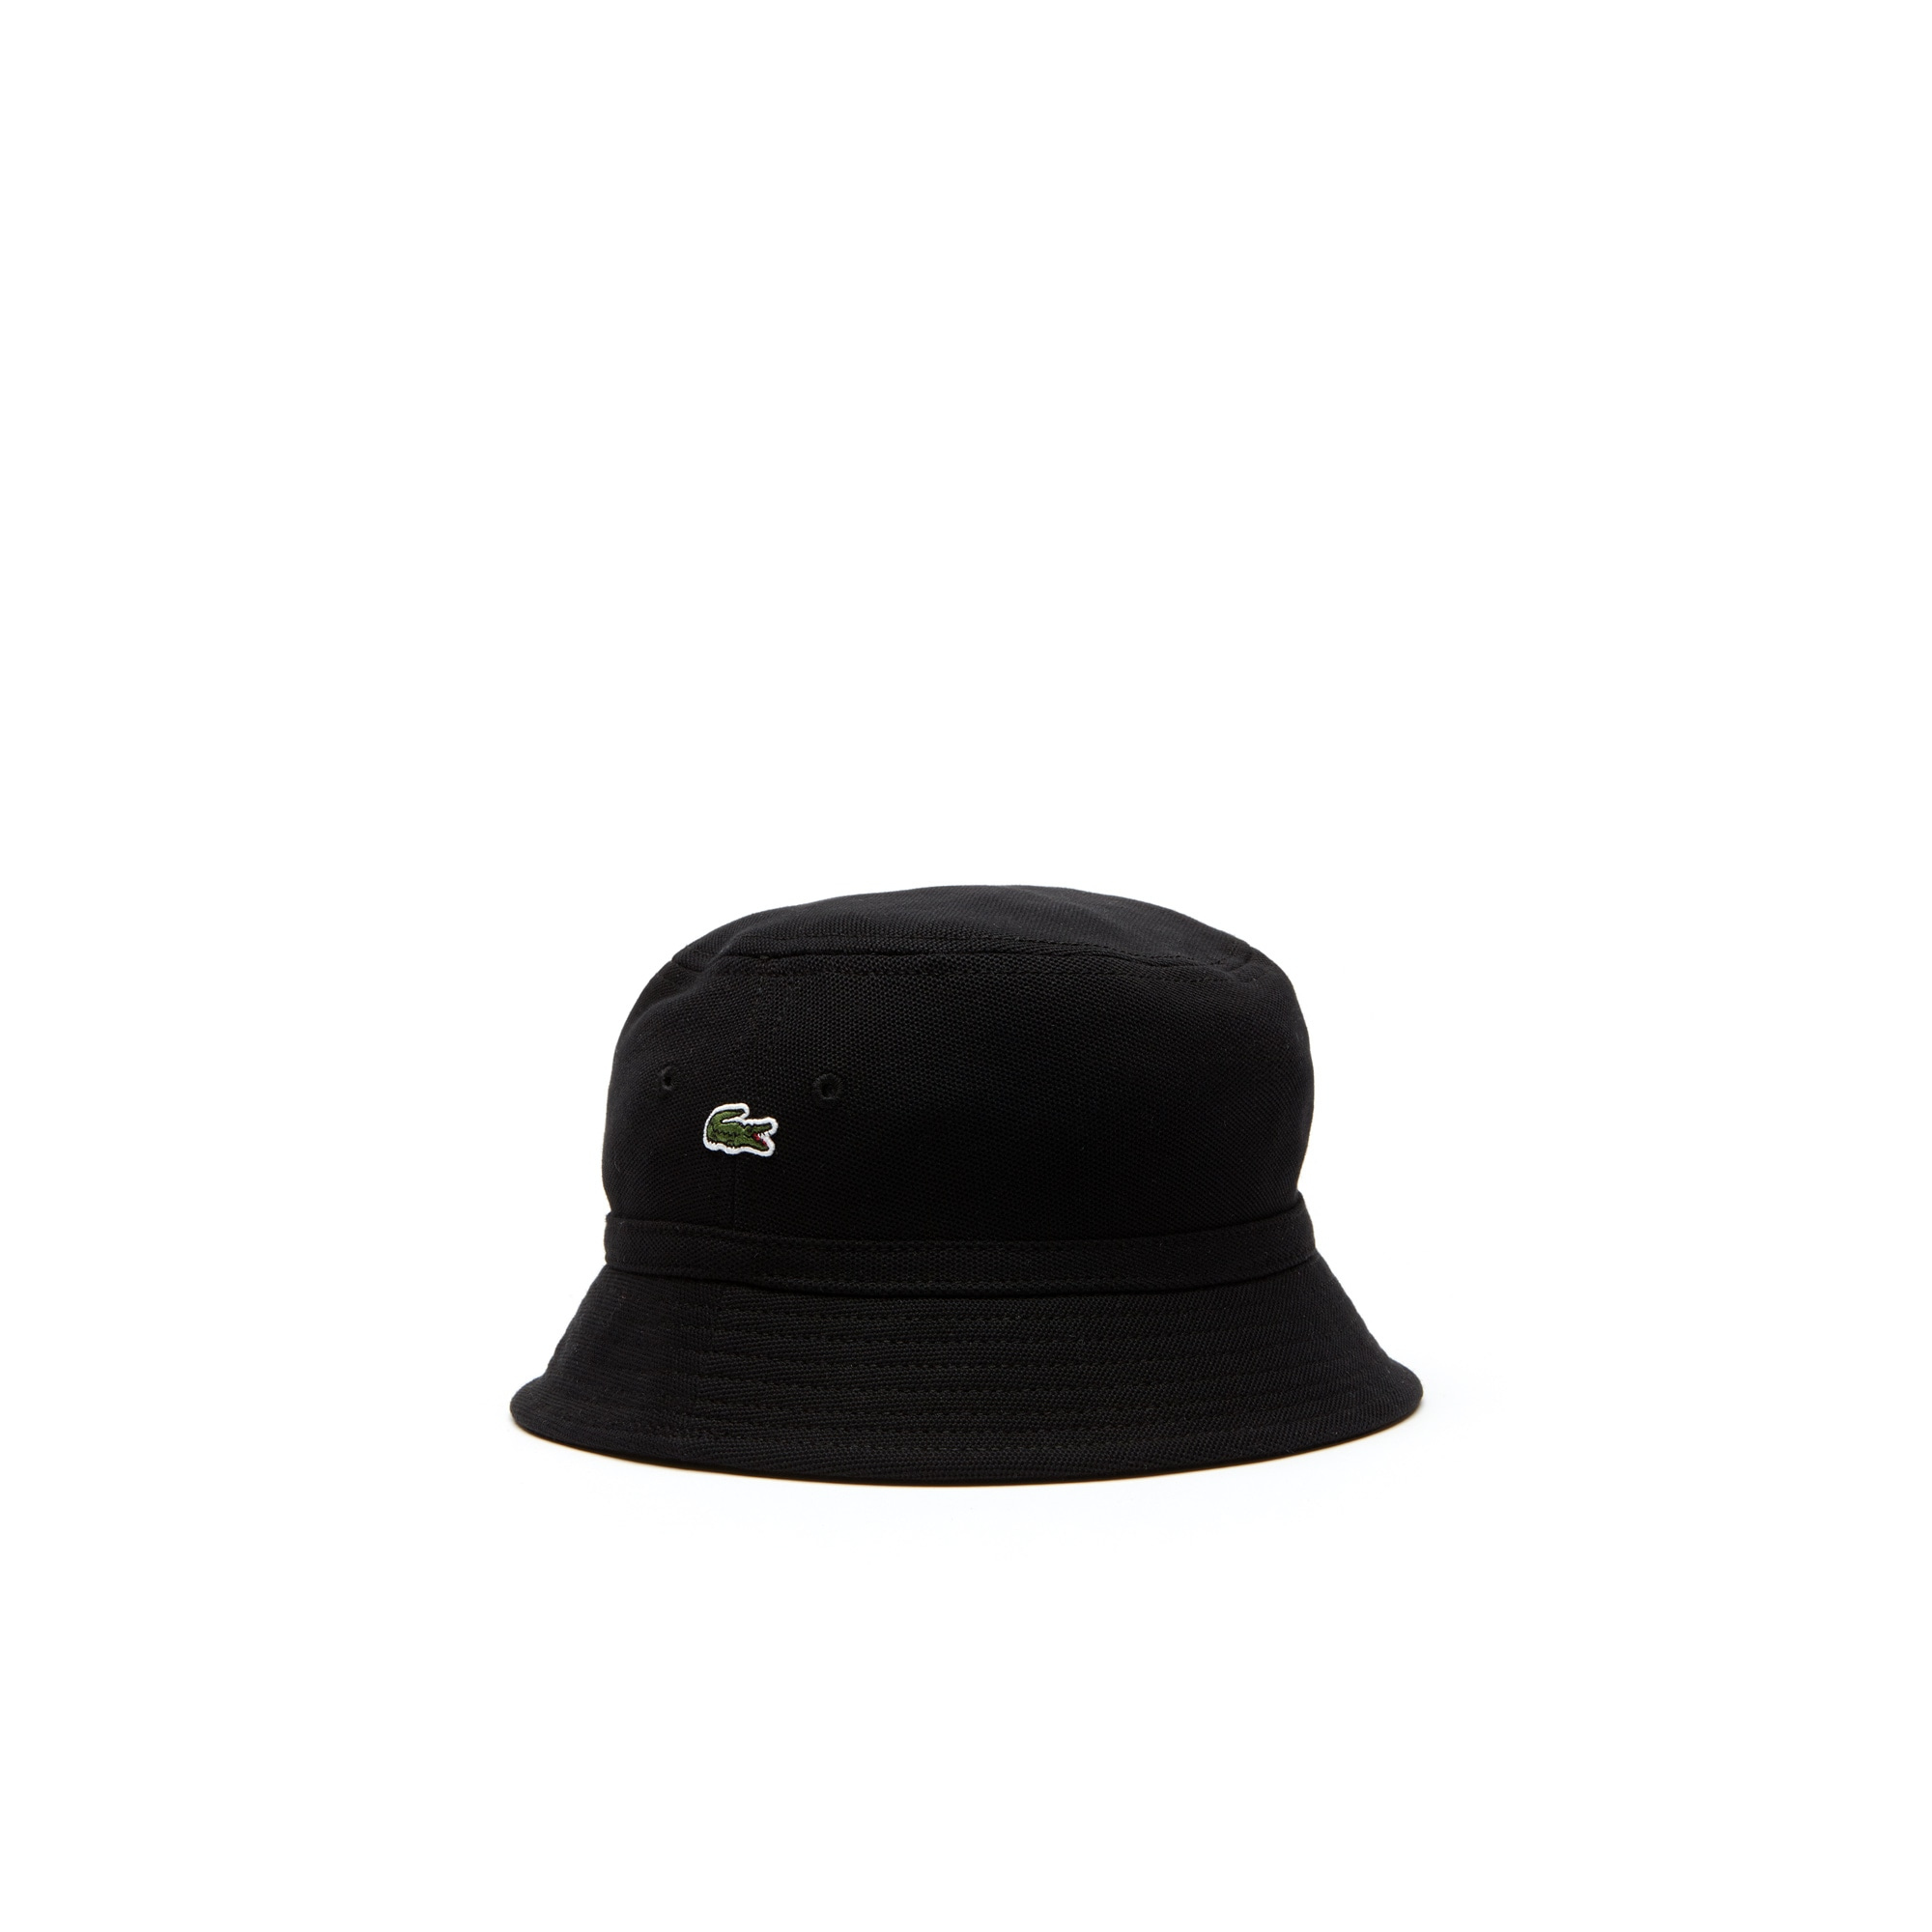 4408608f7 Men's Caps and Hats | Men's Accessories | LACOSTE